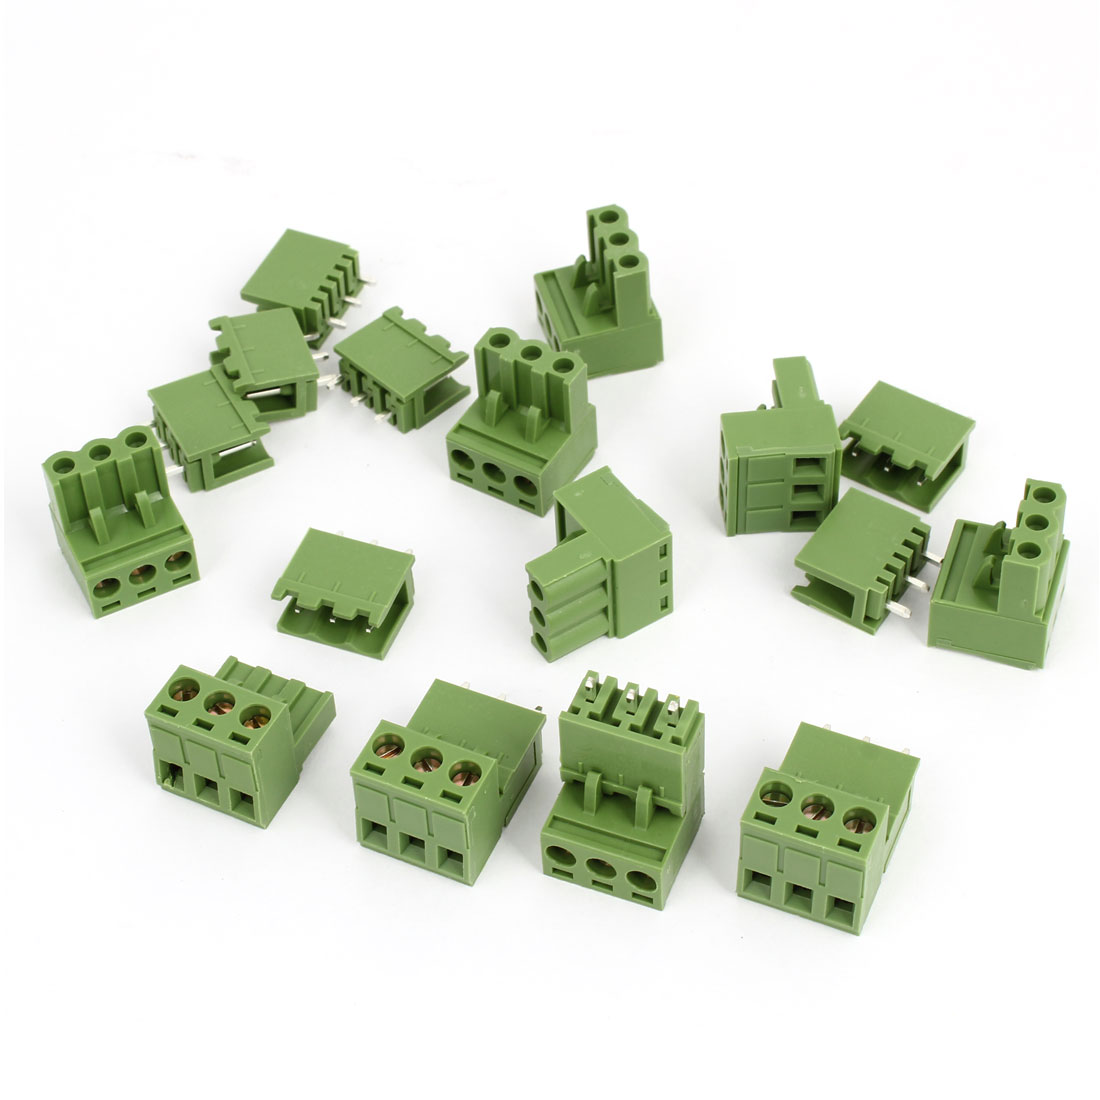 10Pcs 300V 10A 3P Poles PCB Screw Terminal Block Connector 5.08mm Pitch Army Green